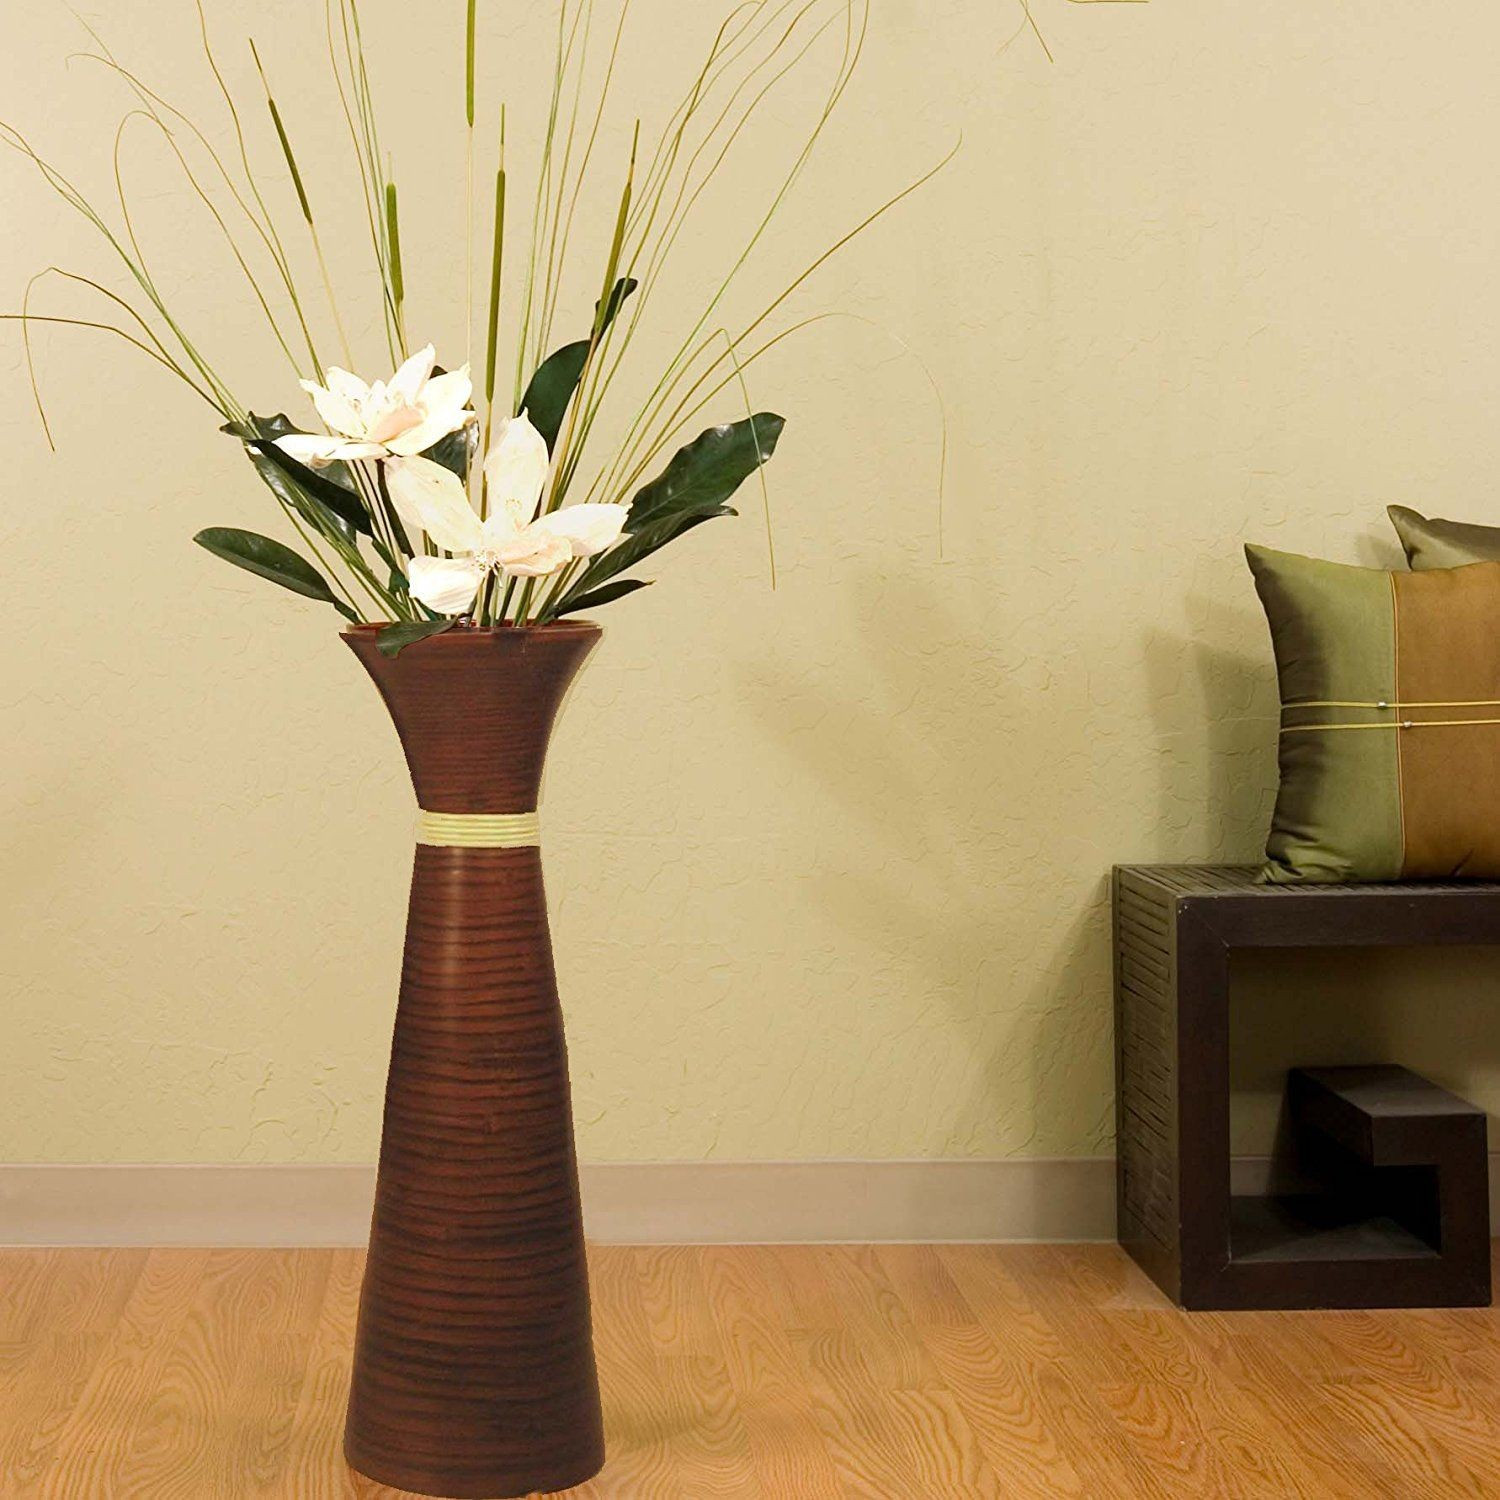 tall floor vase with sticks of 19 luxury bamboo floor vase images dizpos com with bamboo floor vase awesome green floral crafts 28 in plantation bamboo floor vase brown with pictures